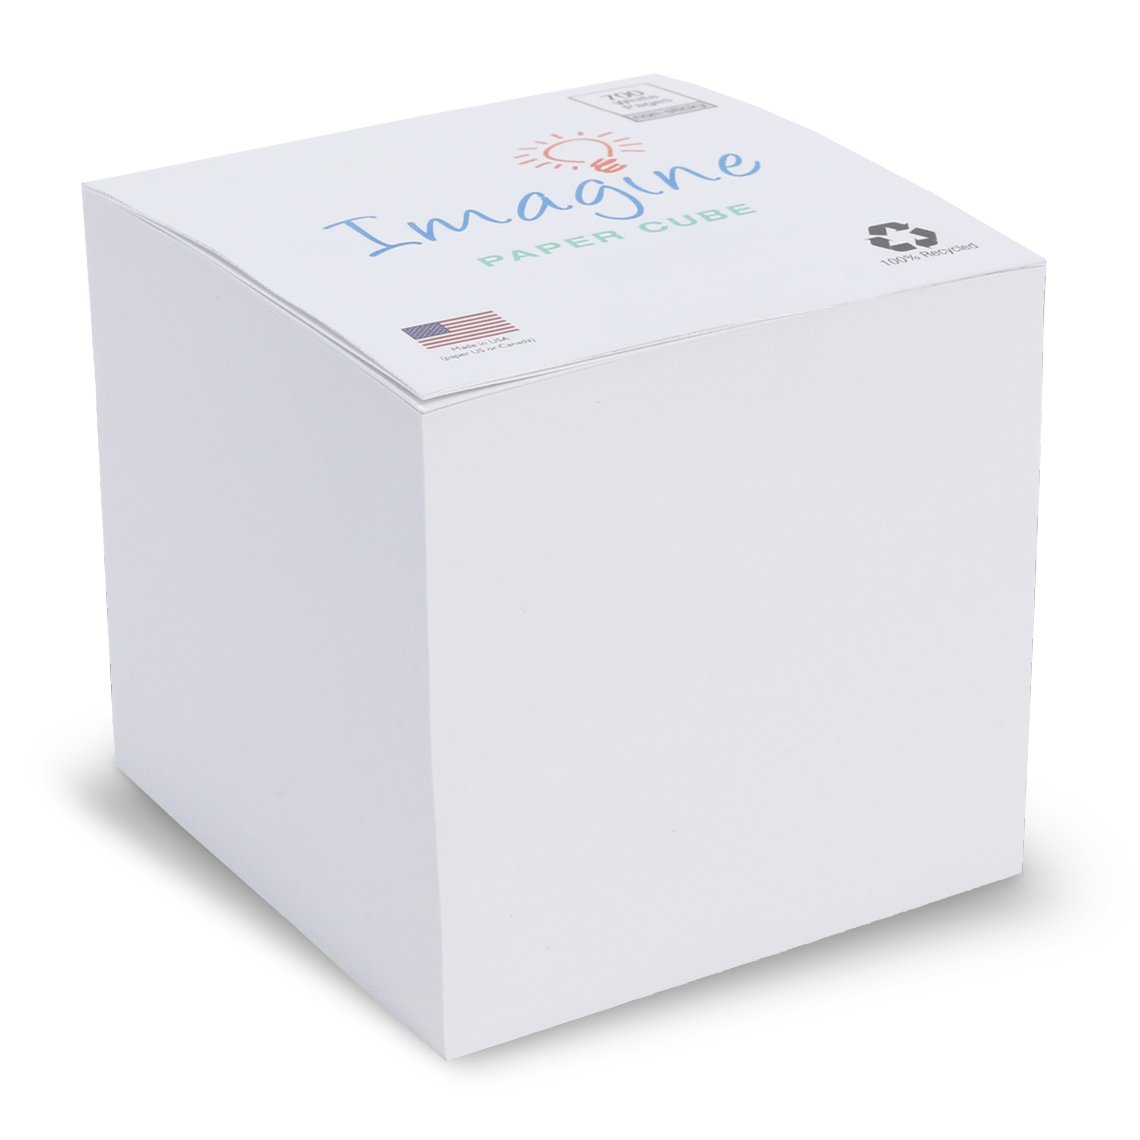 Blank Note Cube - NOT STICKY 3.5'' cube - Made in USA (paper US or CAN) - 100% Recycled 24 lb. bond - 700 tear-off white pages NOT LOOSE